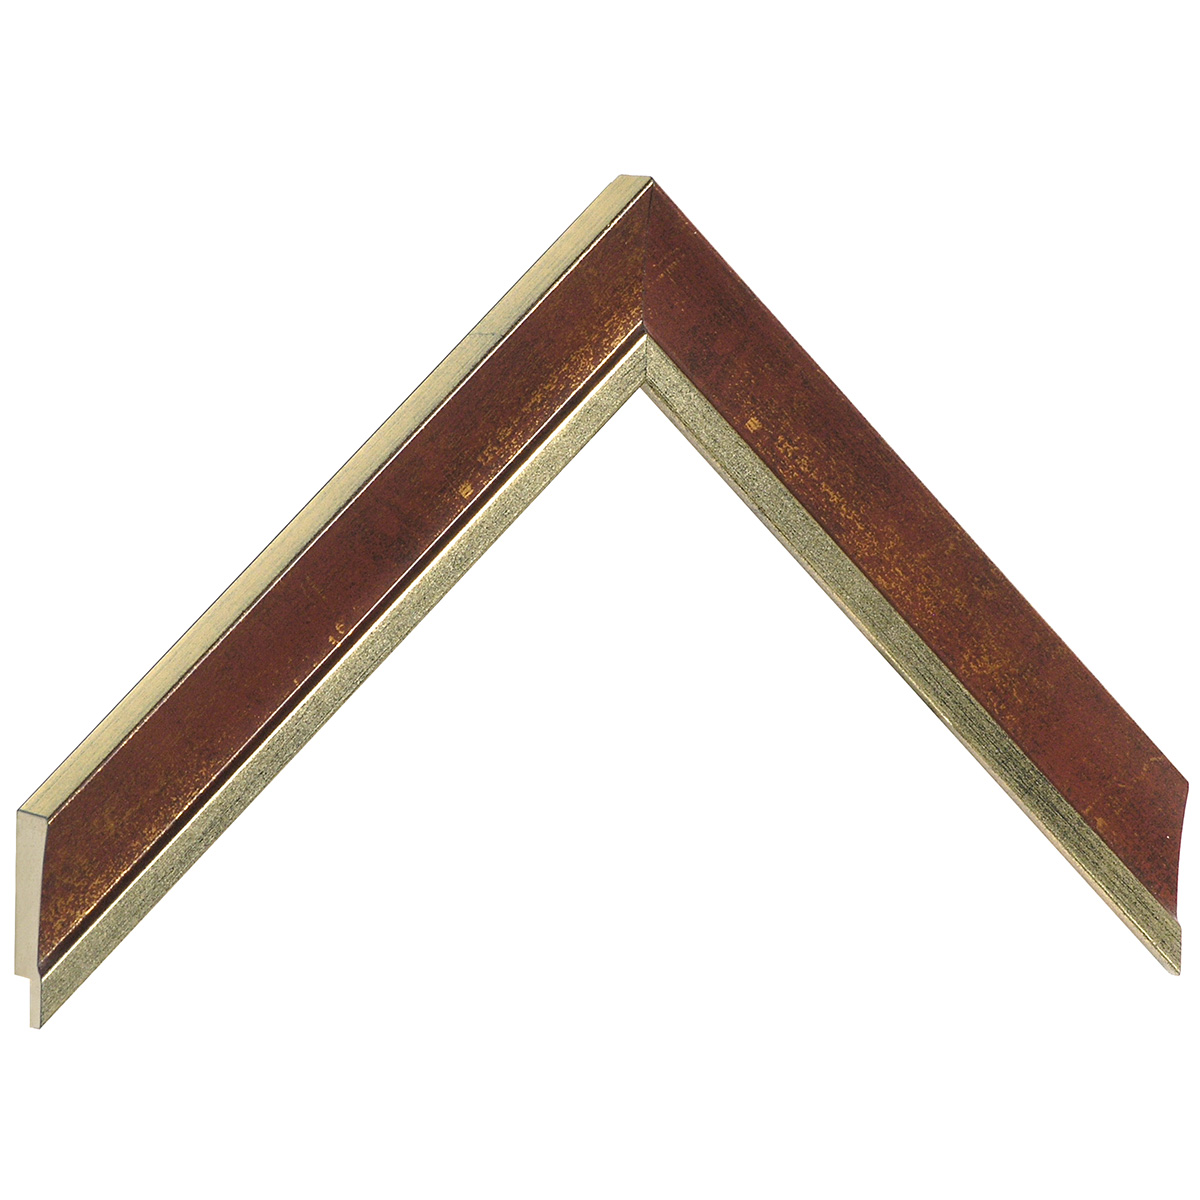 Moulding ayous - Width 25mm - Gold with red band